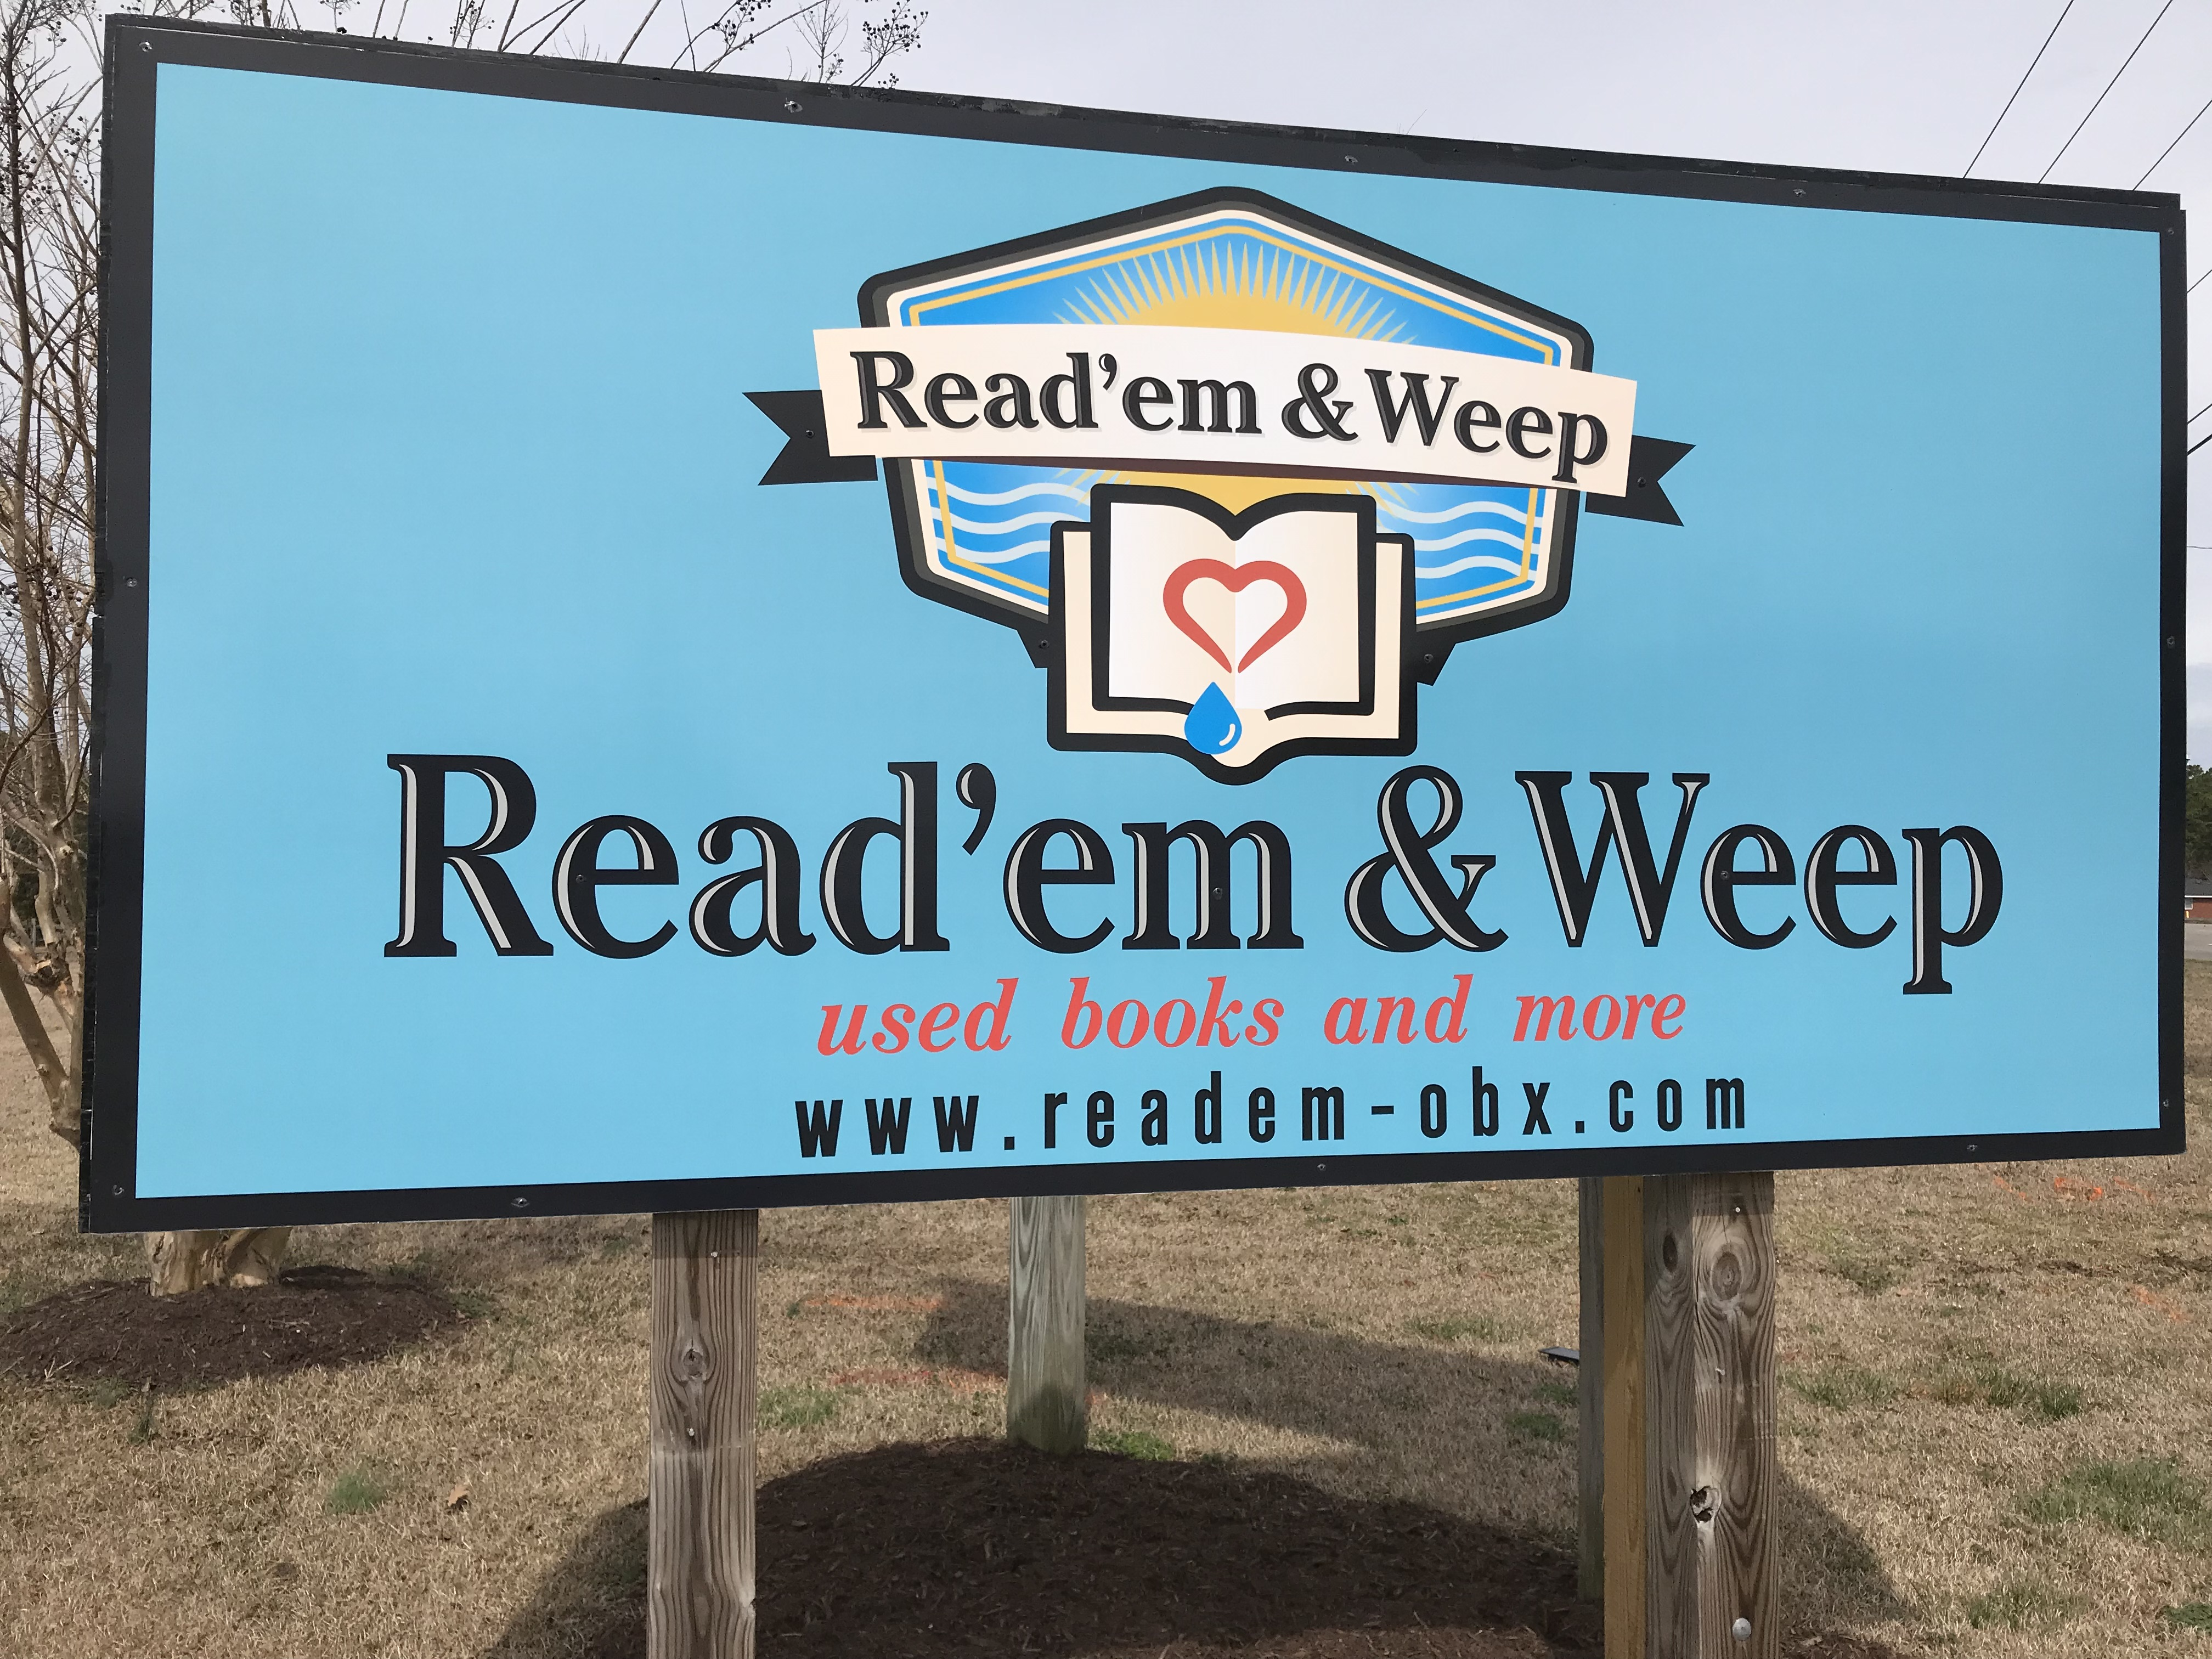 Read 'Em and Weep Currituck County Outer Banks book store 5